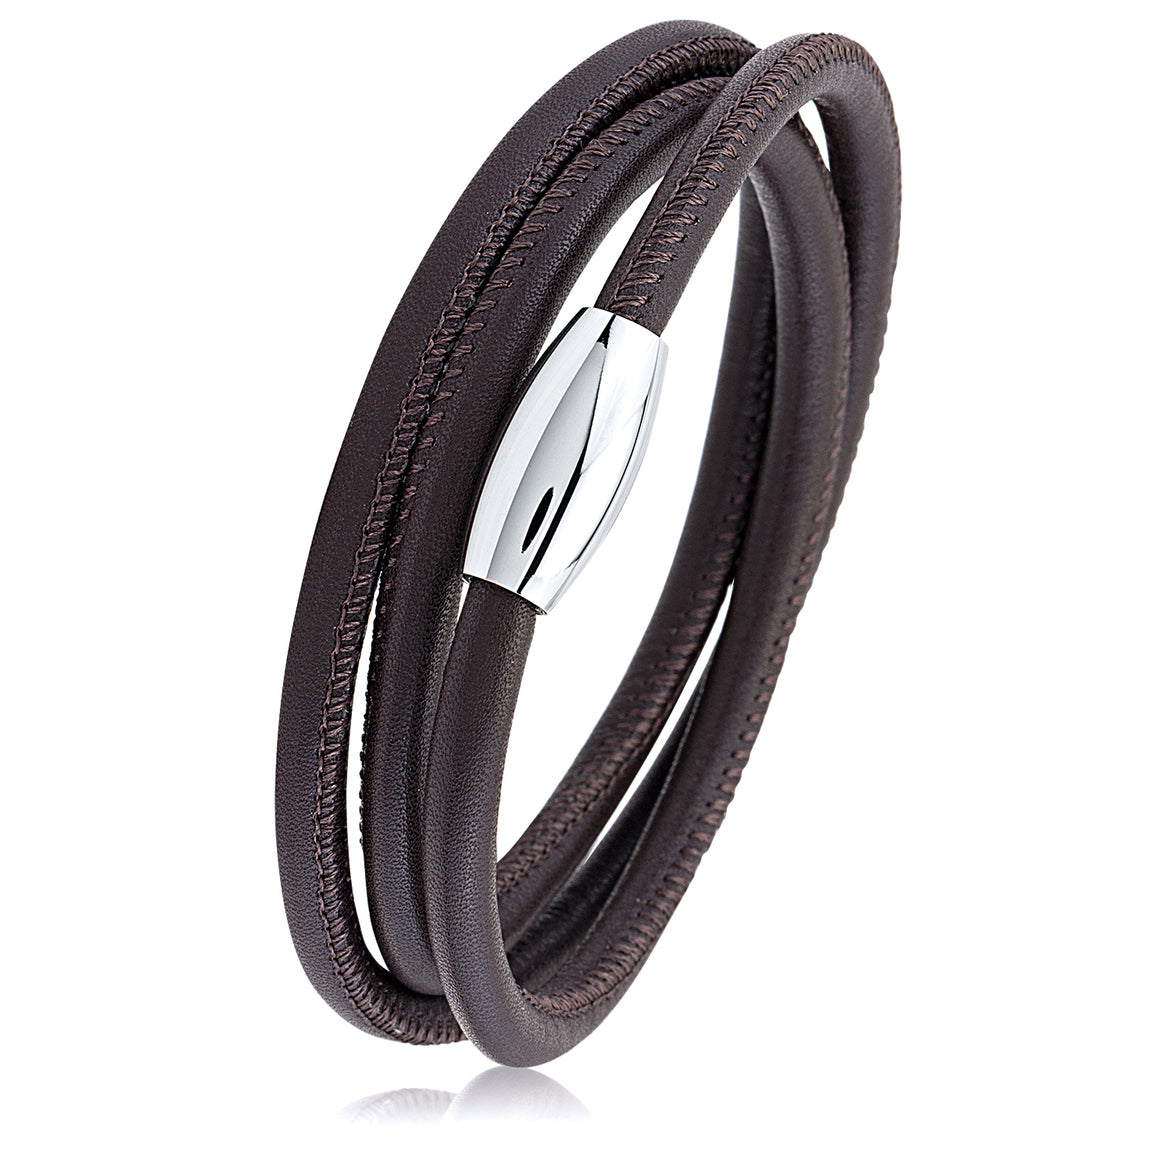 Stainless Steel Brown Smooth Leather Wrap Bracelet With Steel Clasp